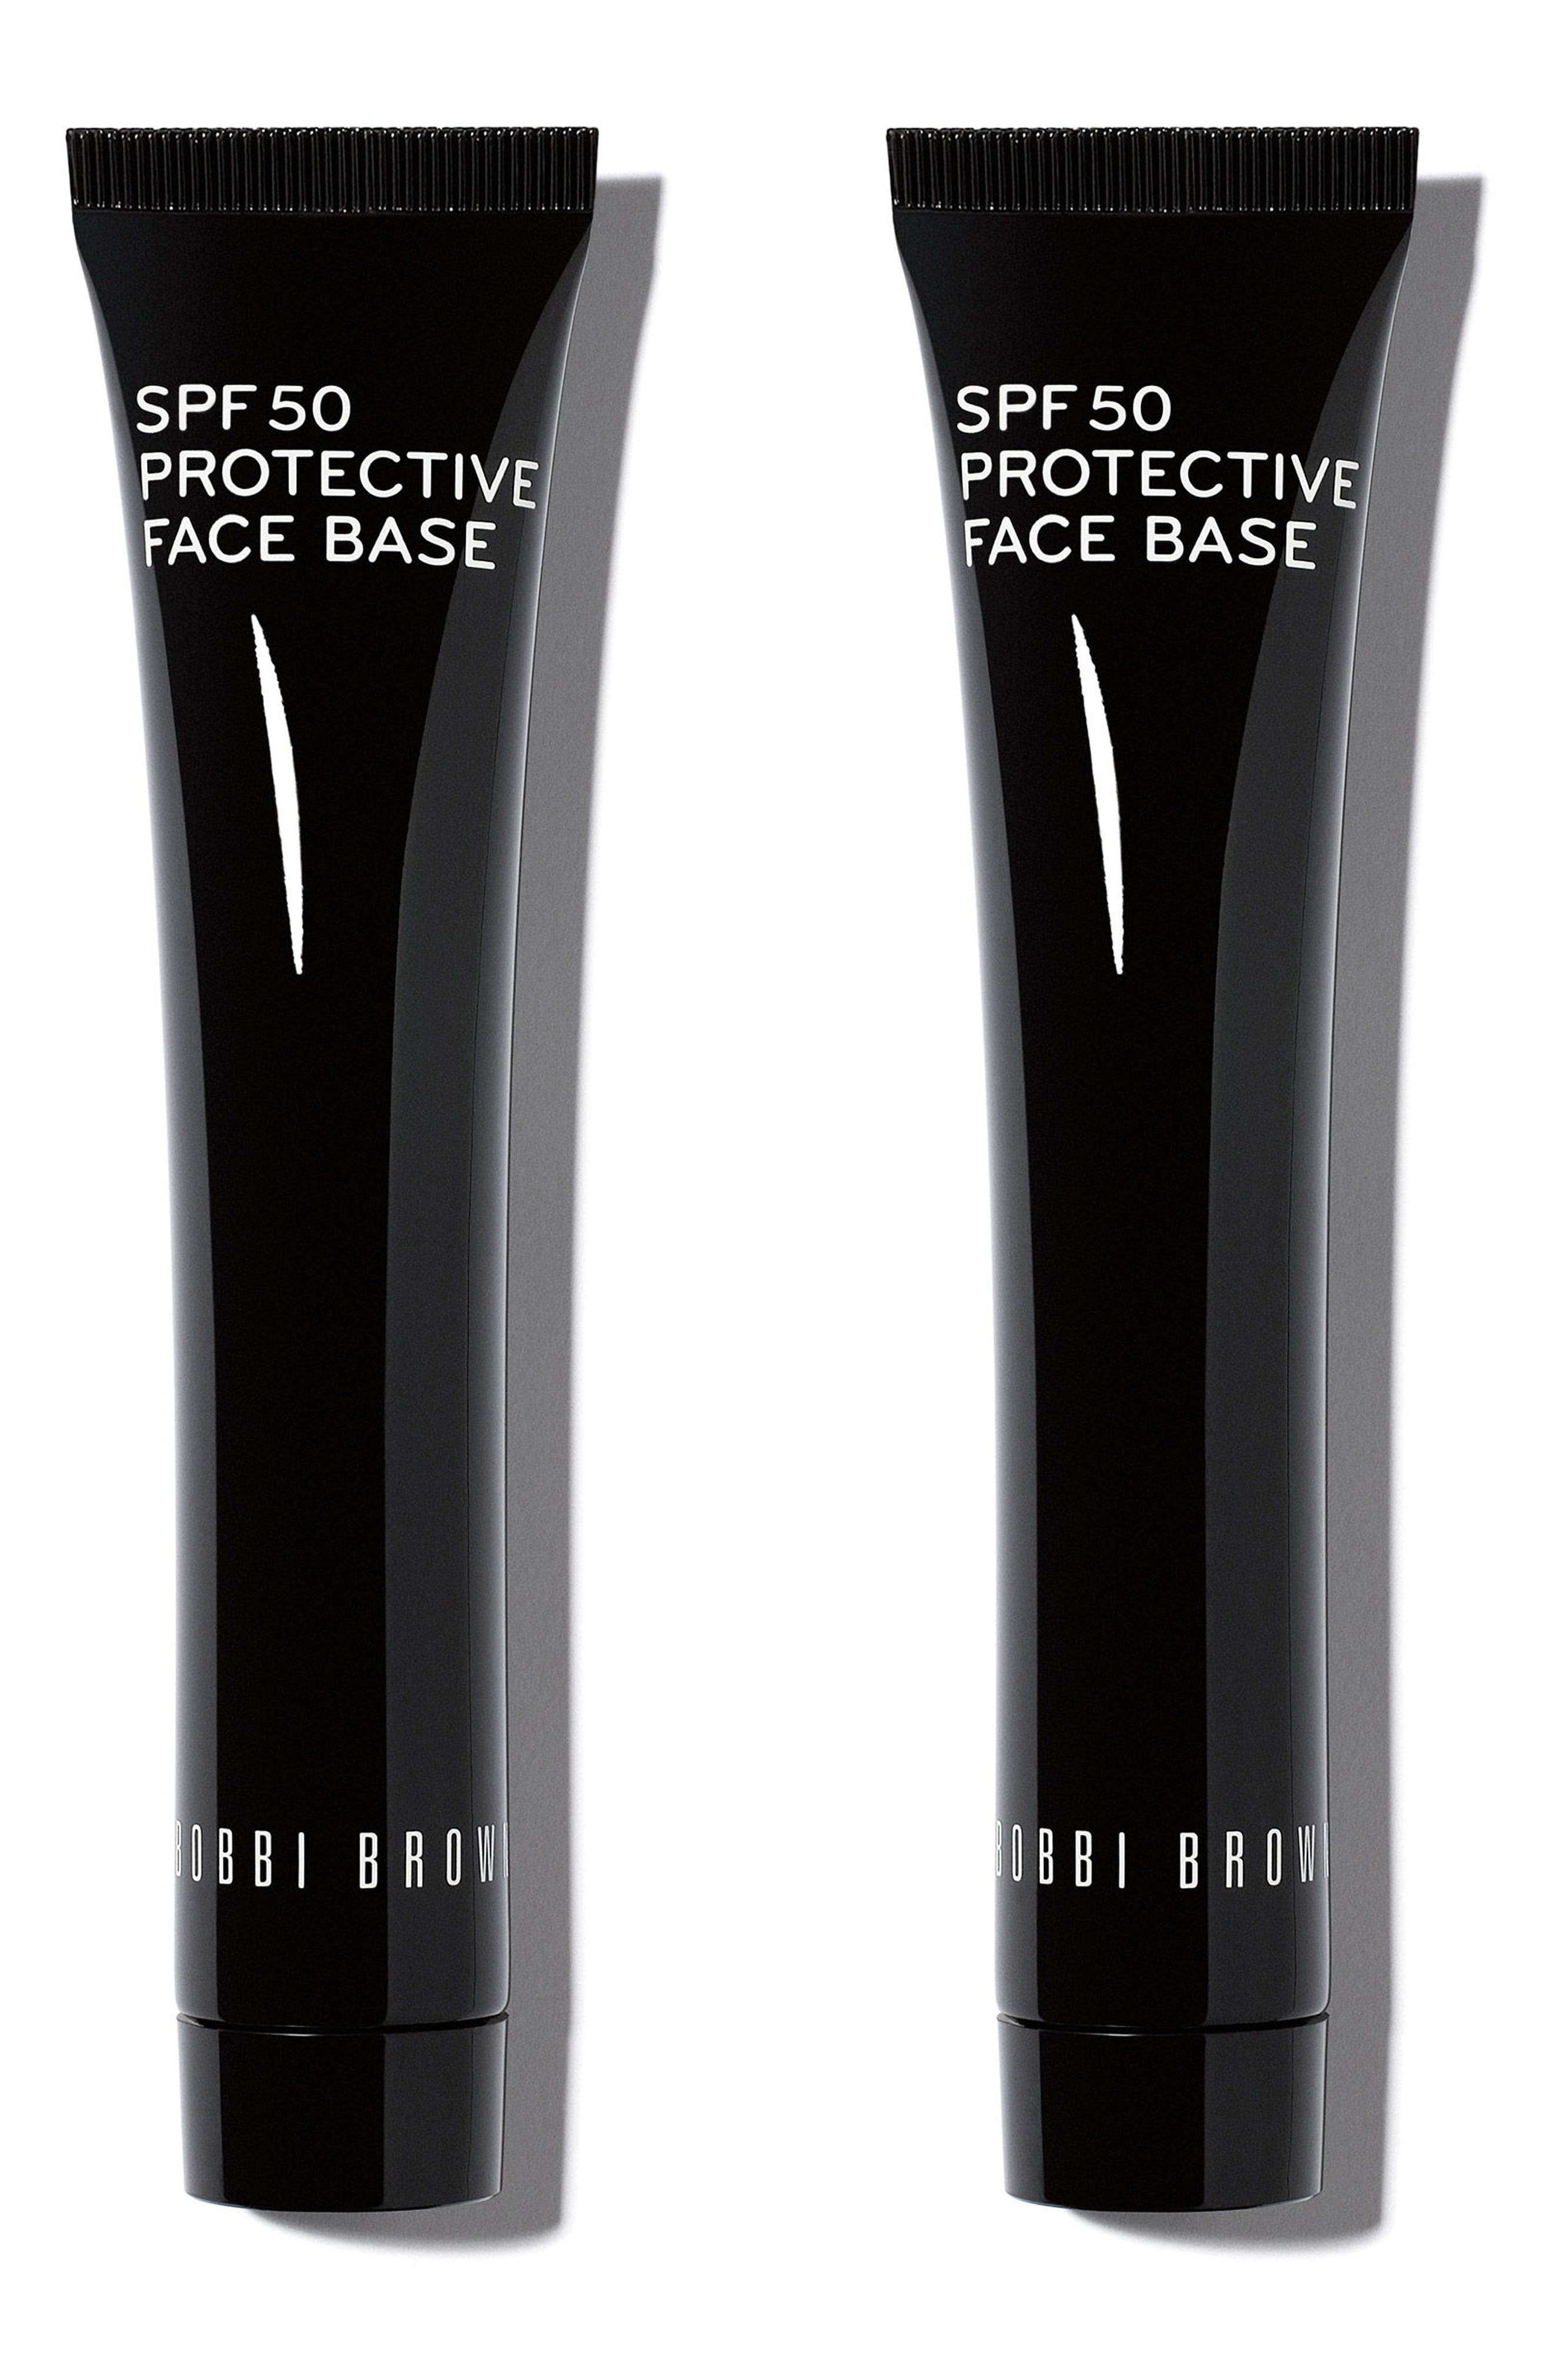 Main Image - Bobbi Brown Protective Face Base SPF 50 Duo (Nordstrom Exclusive) ($86 Value)